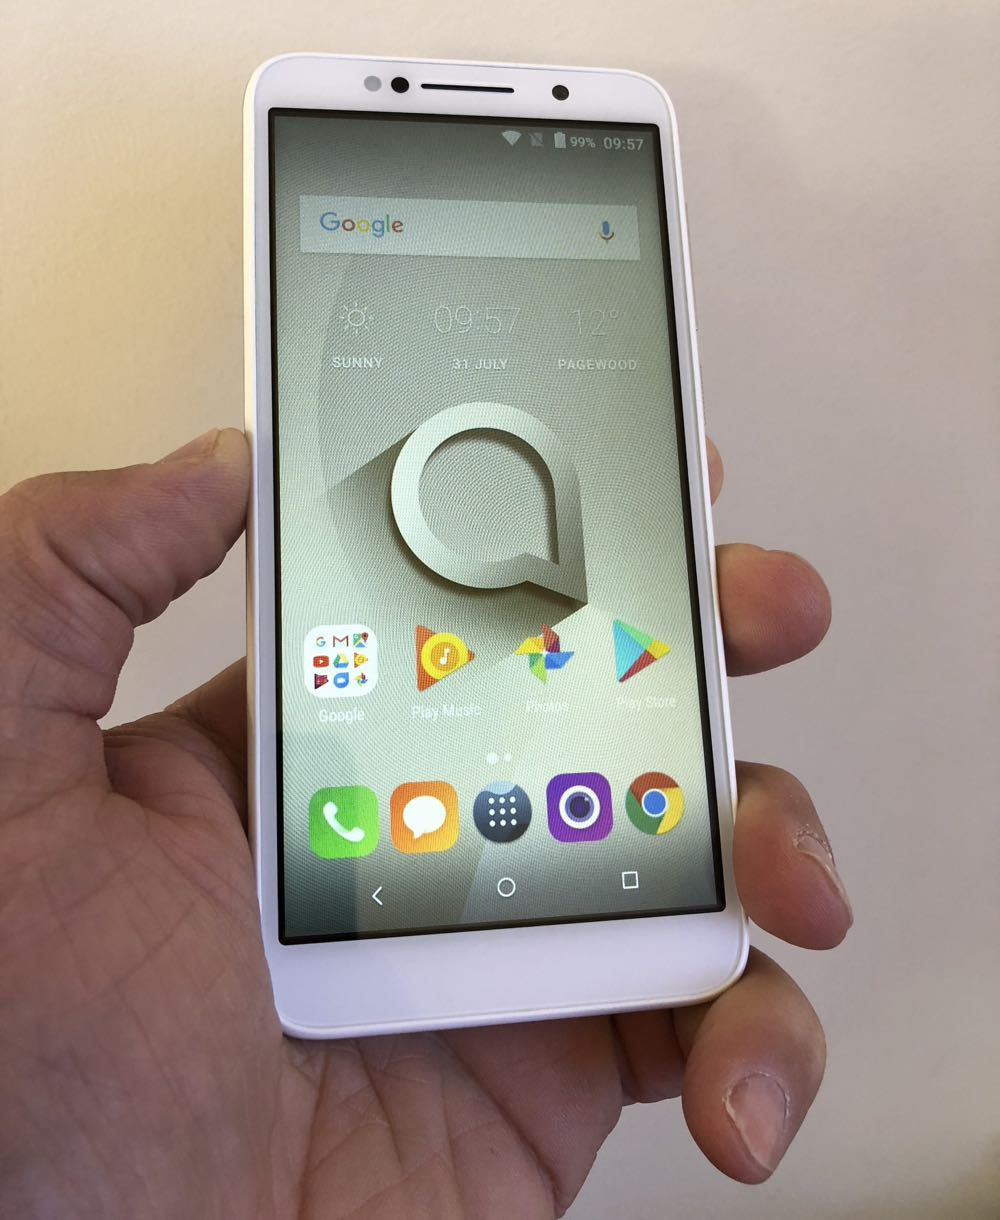 Alcatel 1C smartphone review - one of the best value devices money